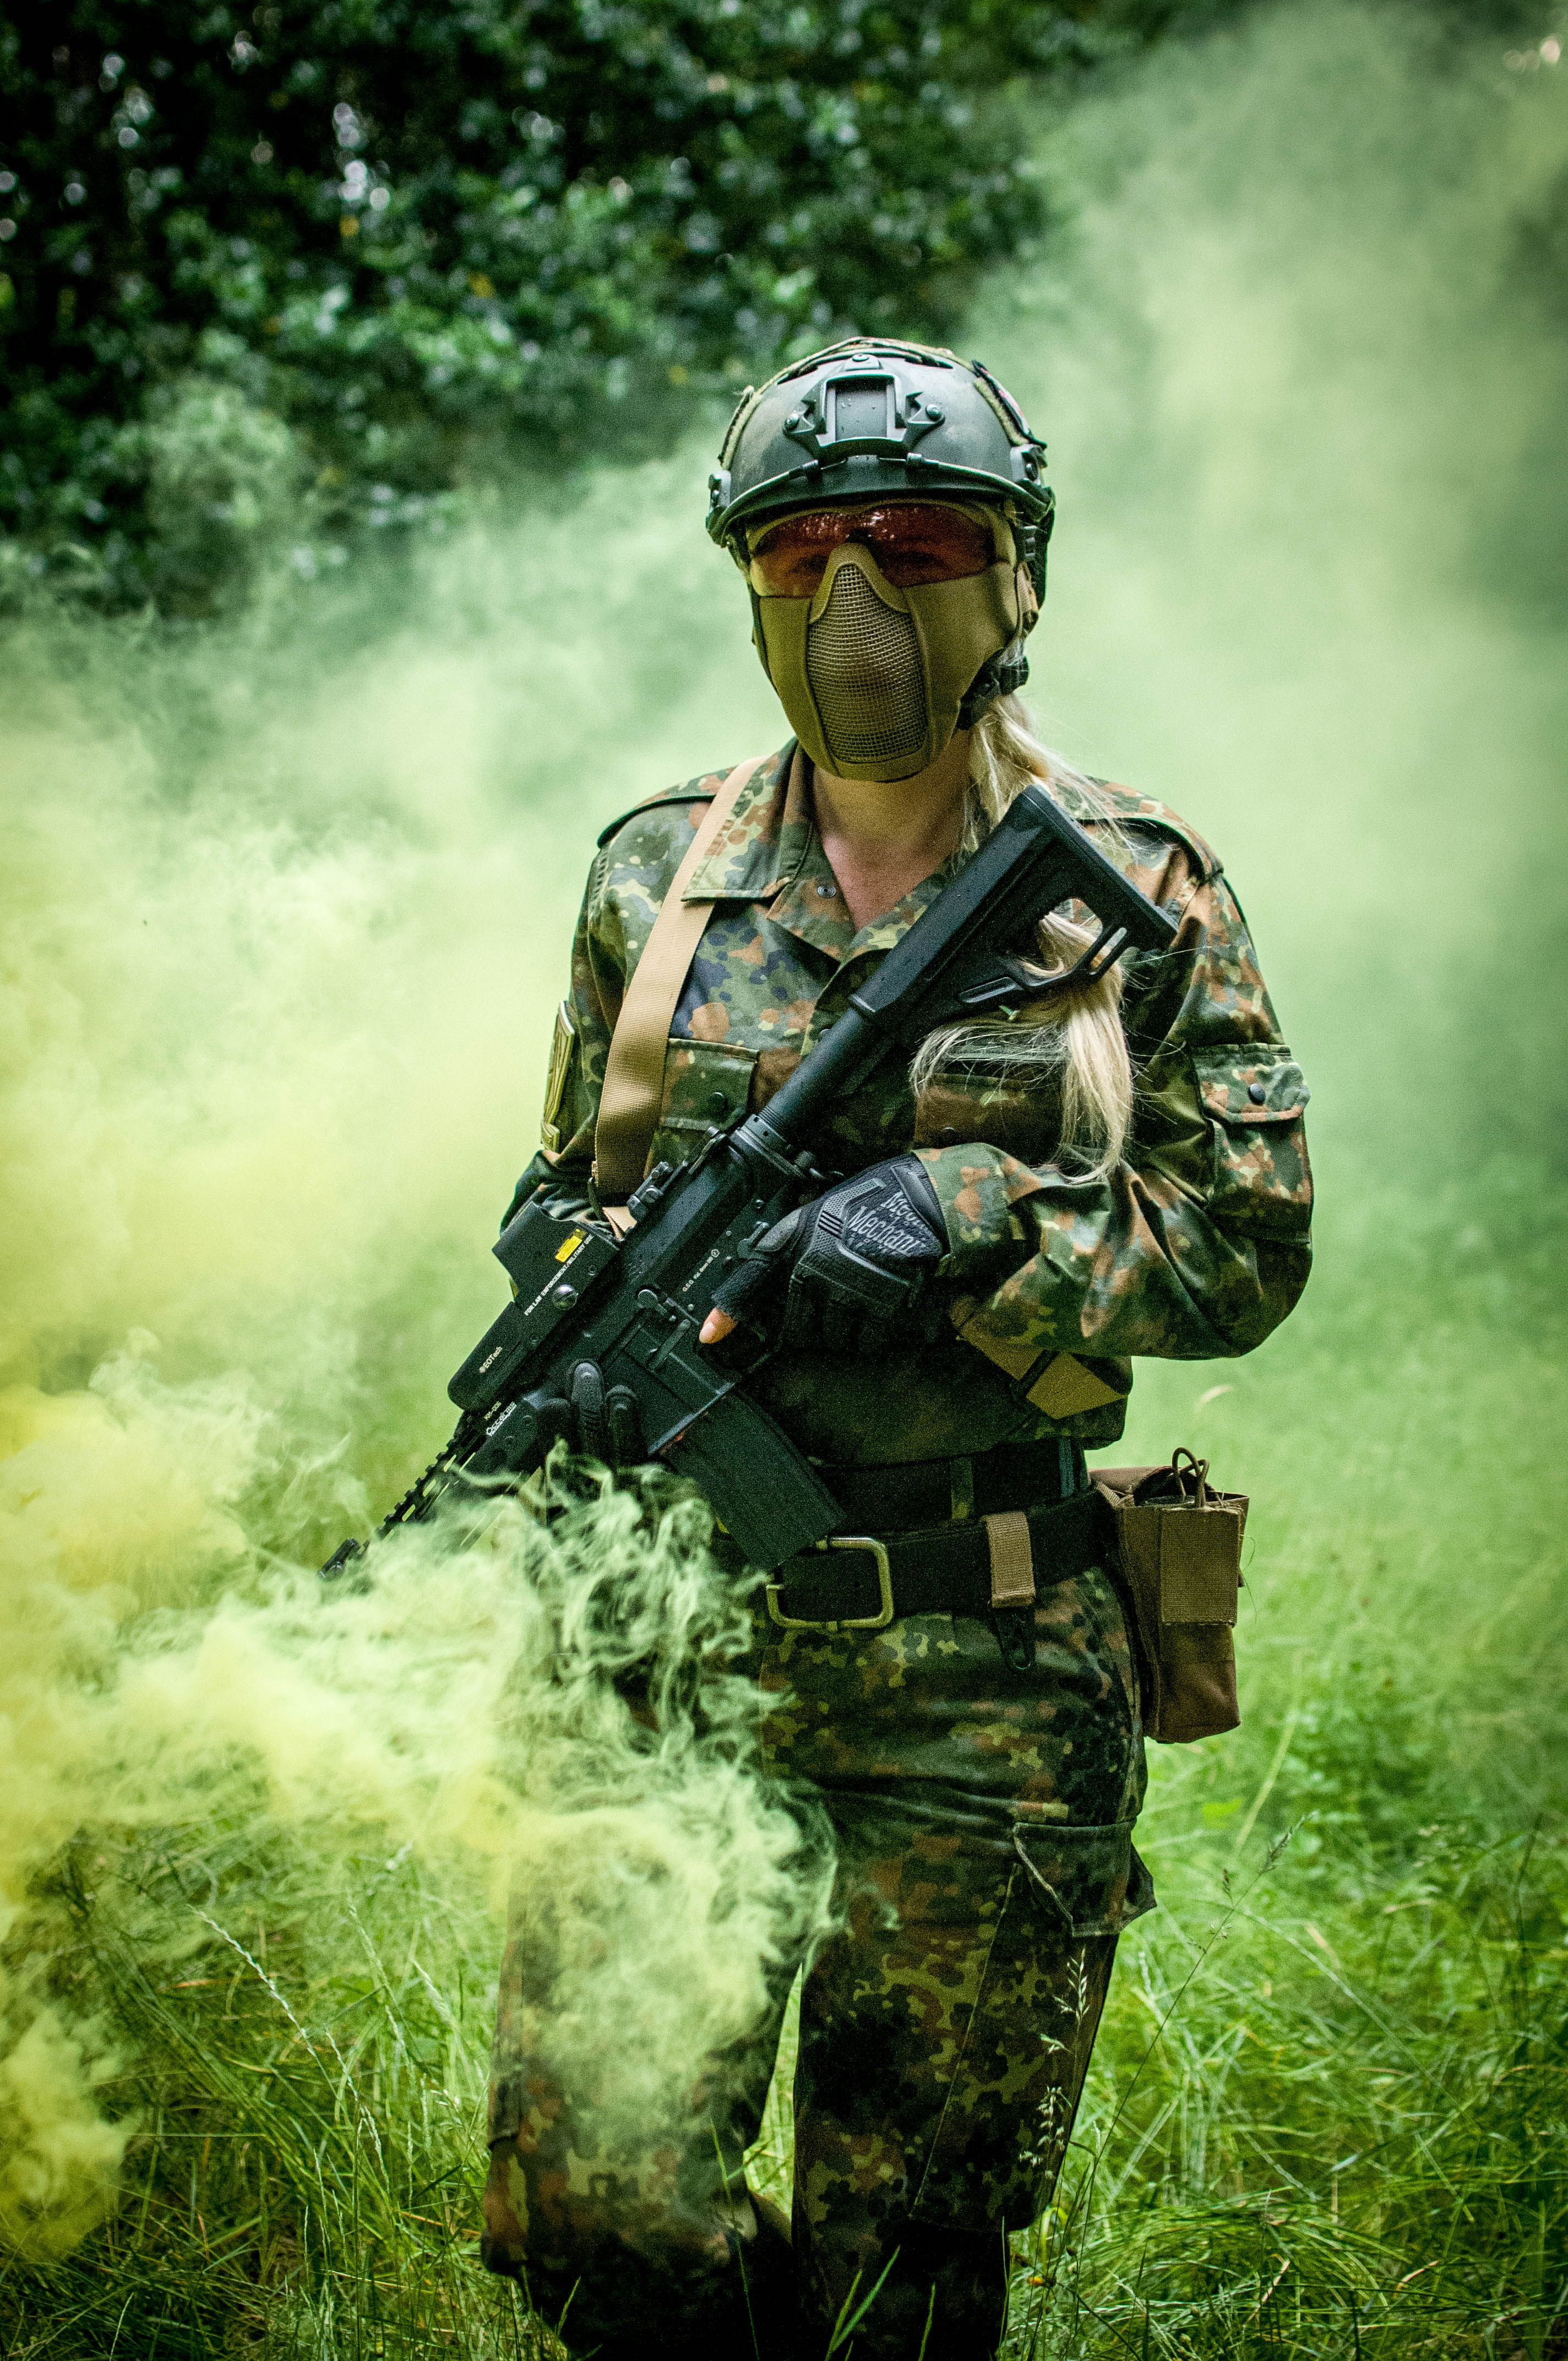 Smoke Day Smoke Grenades Of Enola Gaye Sponsored By Www Paintball Rauchgranaten De Me On Instagram Https Www Instagram Airsoft Paintball Gear Airsoft Gear